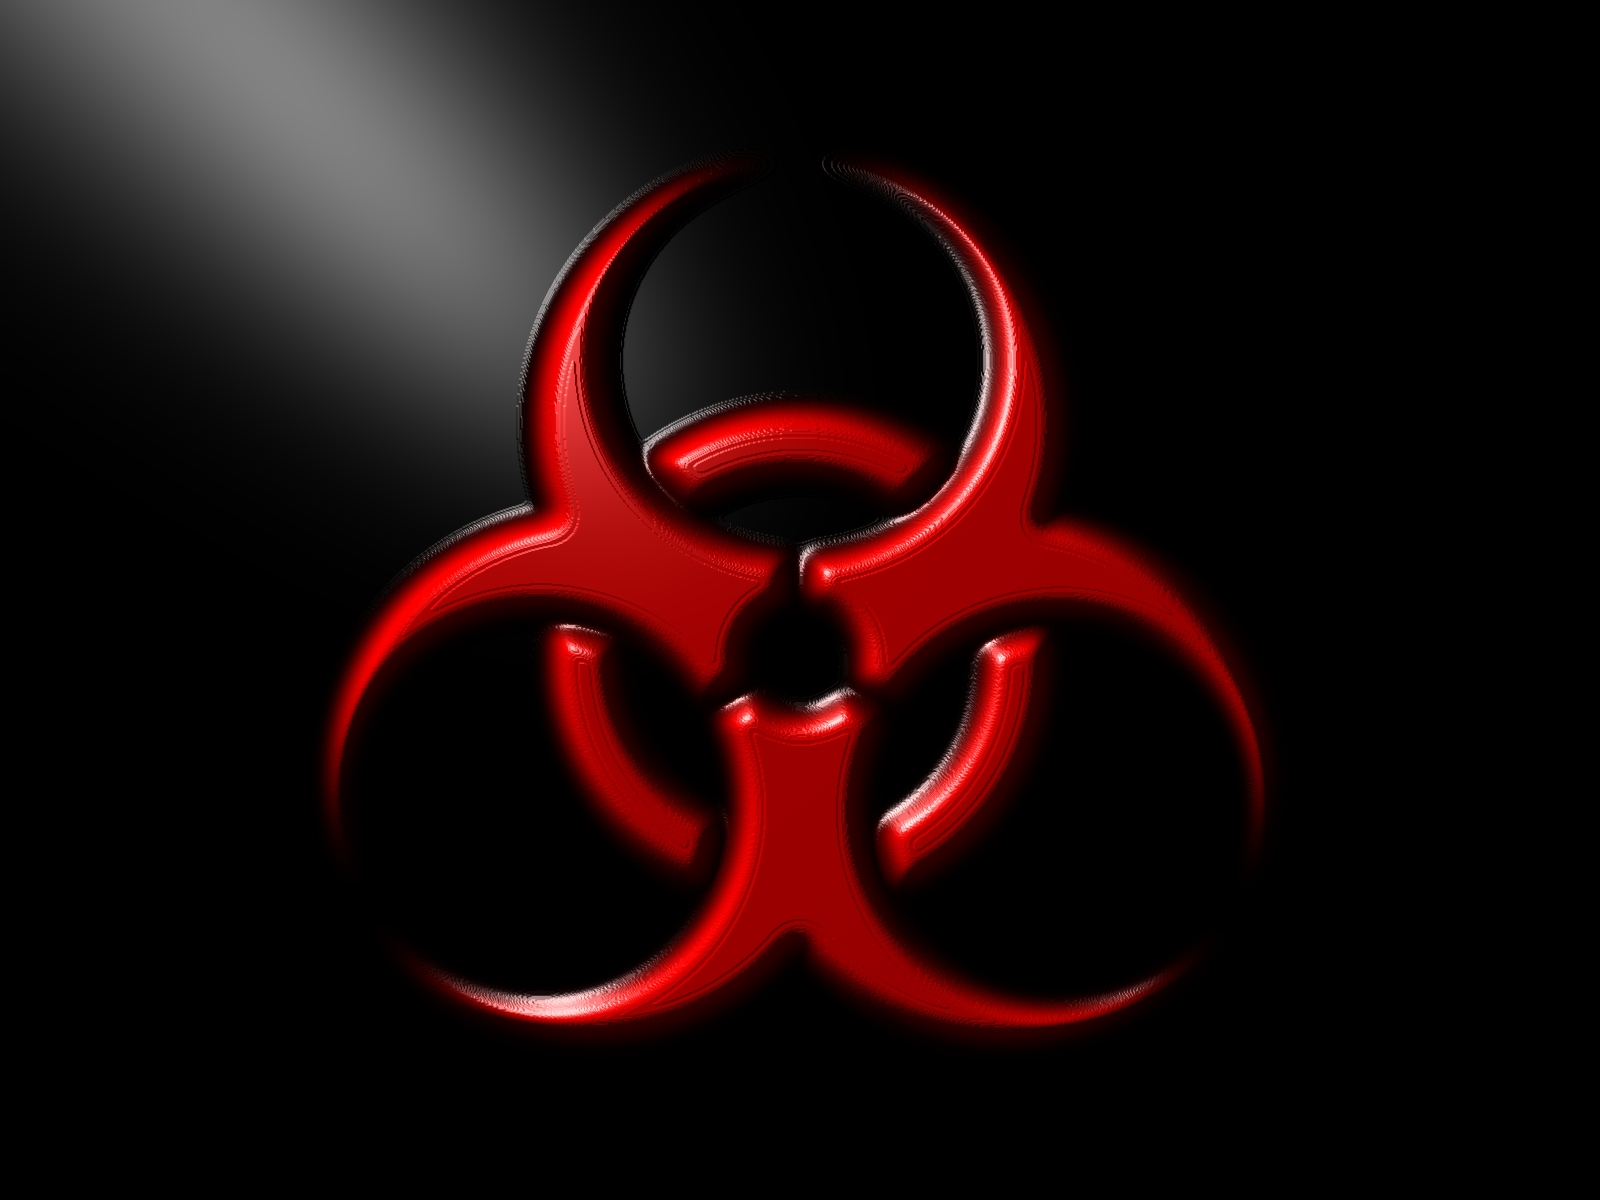 biohazard symbol black - photo #21